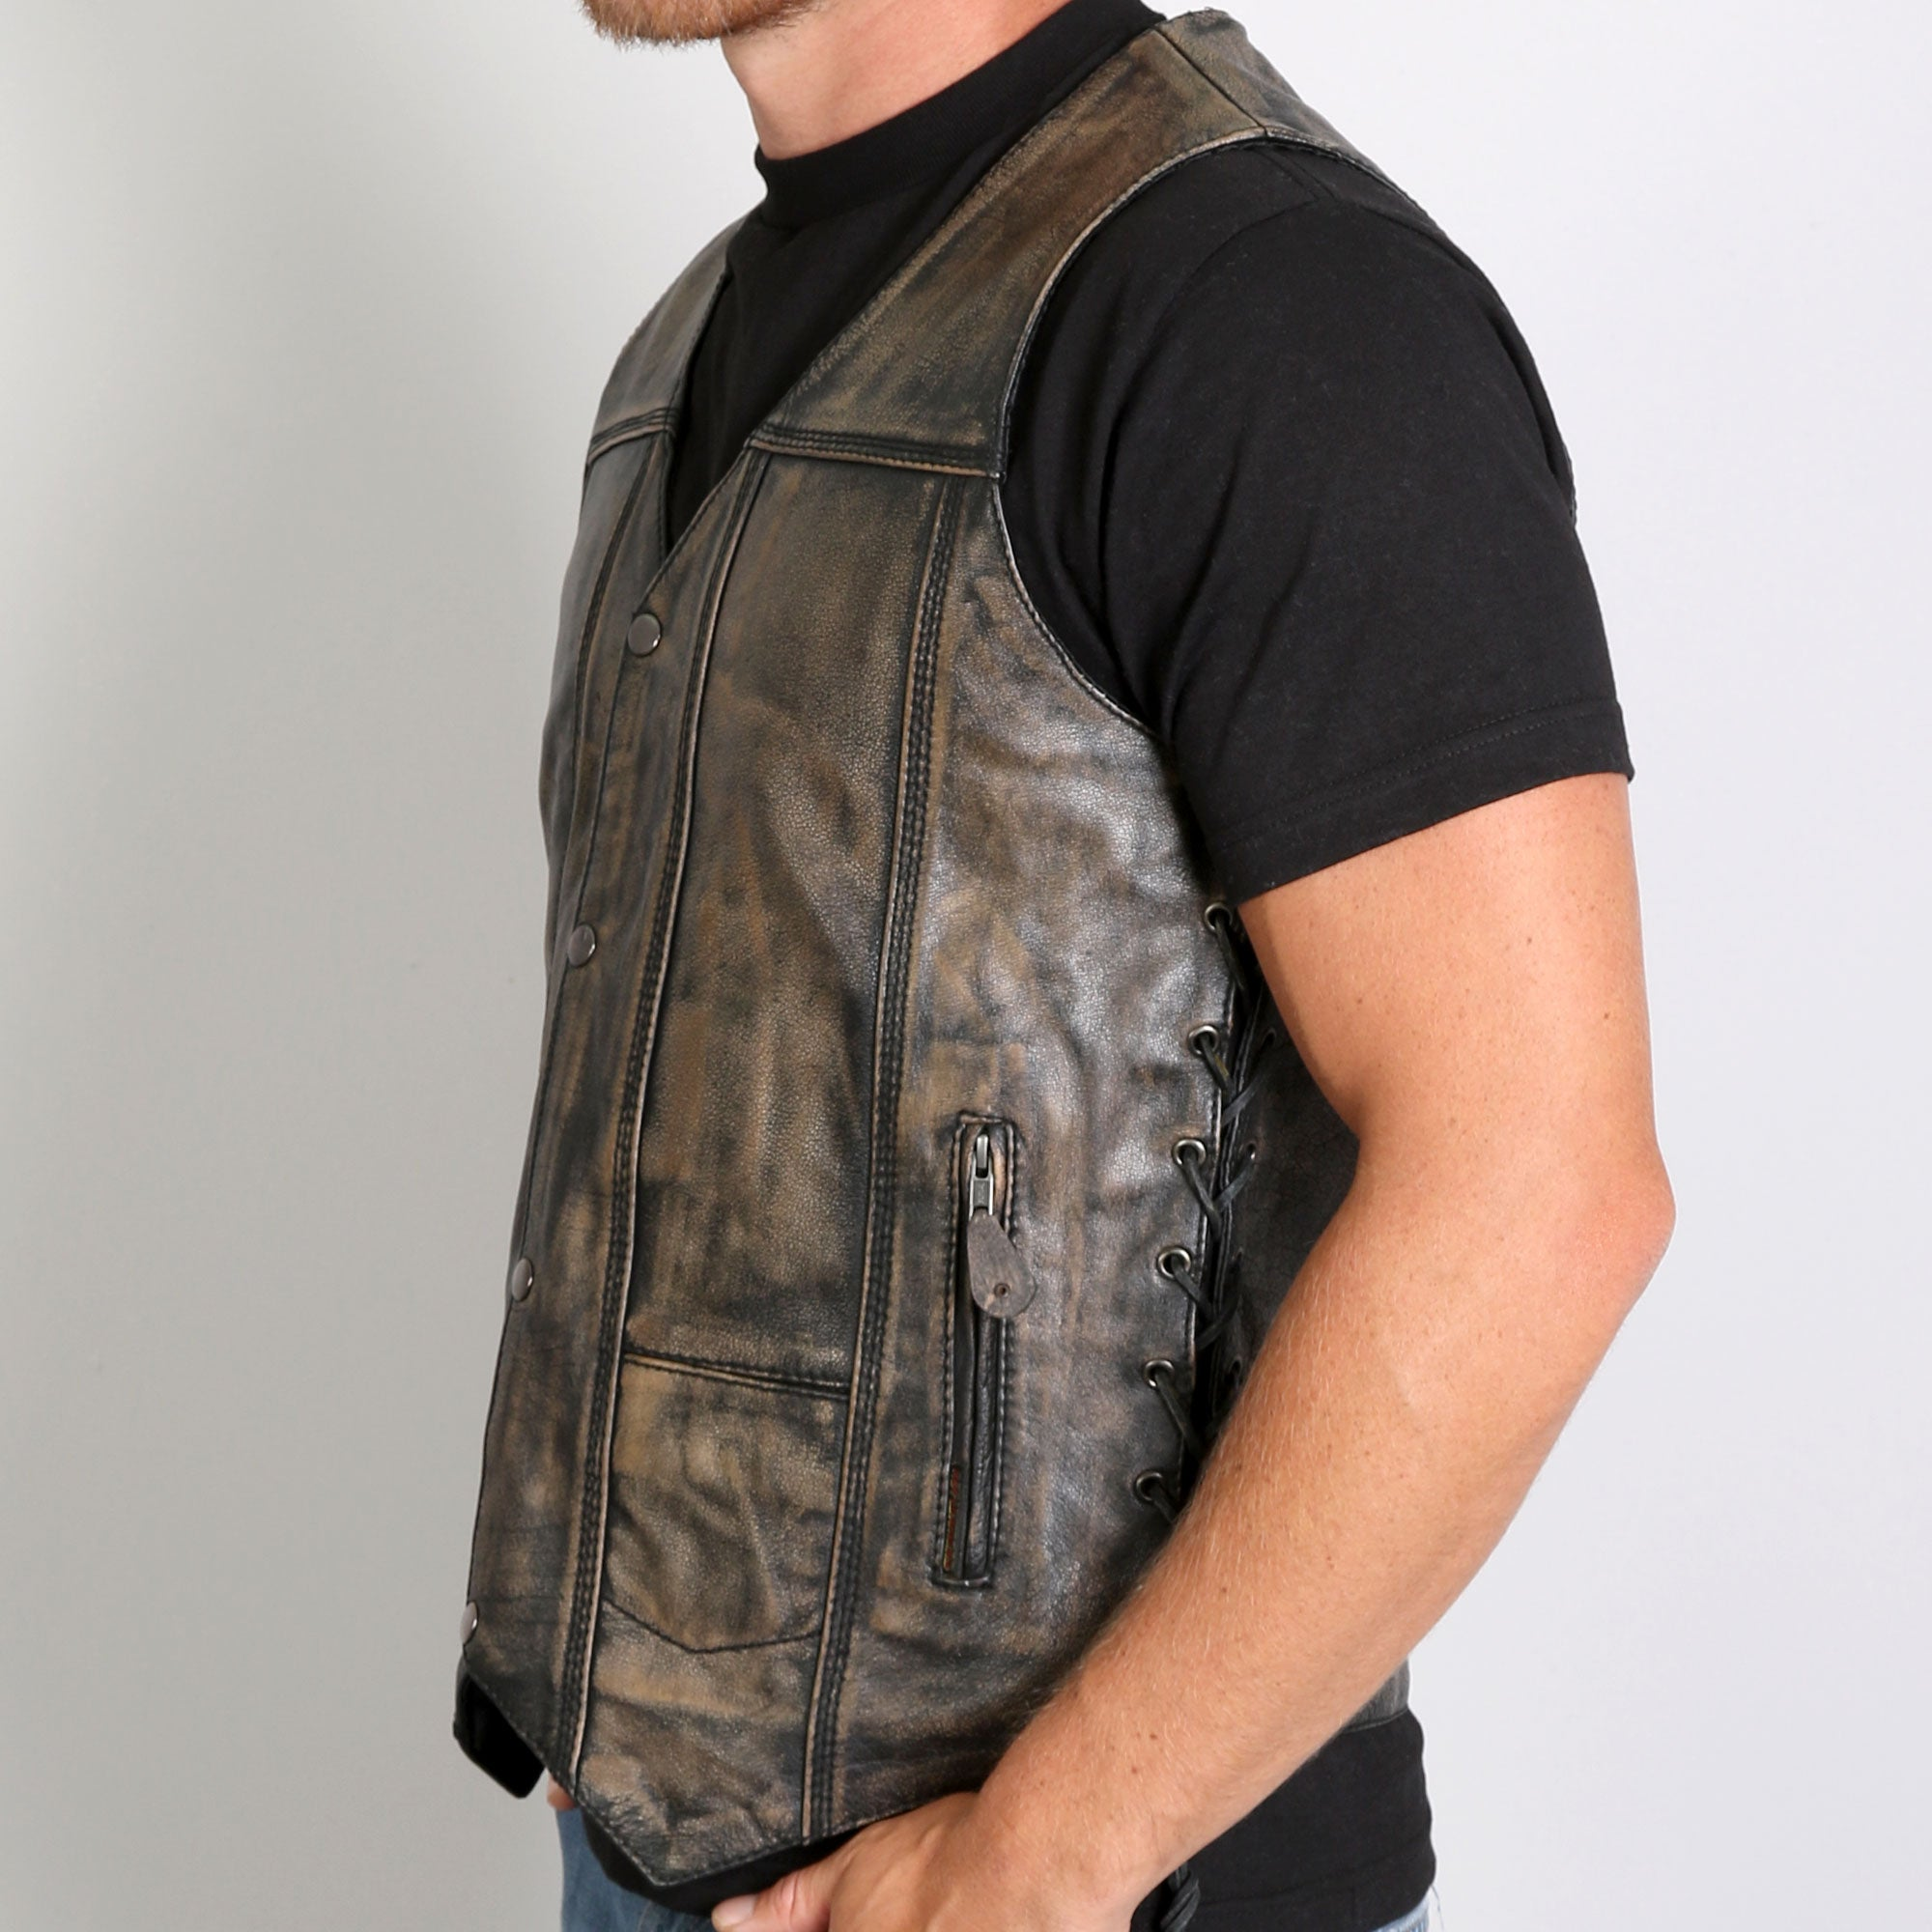 Hot Leathers Men's Heritage Collection Brown Leather Vest